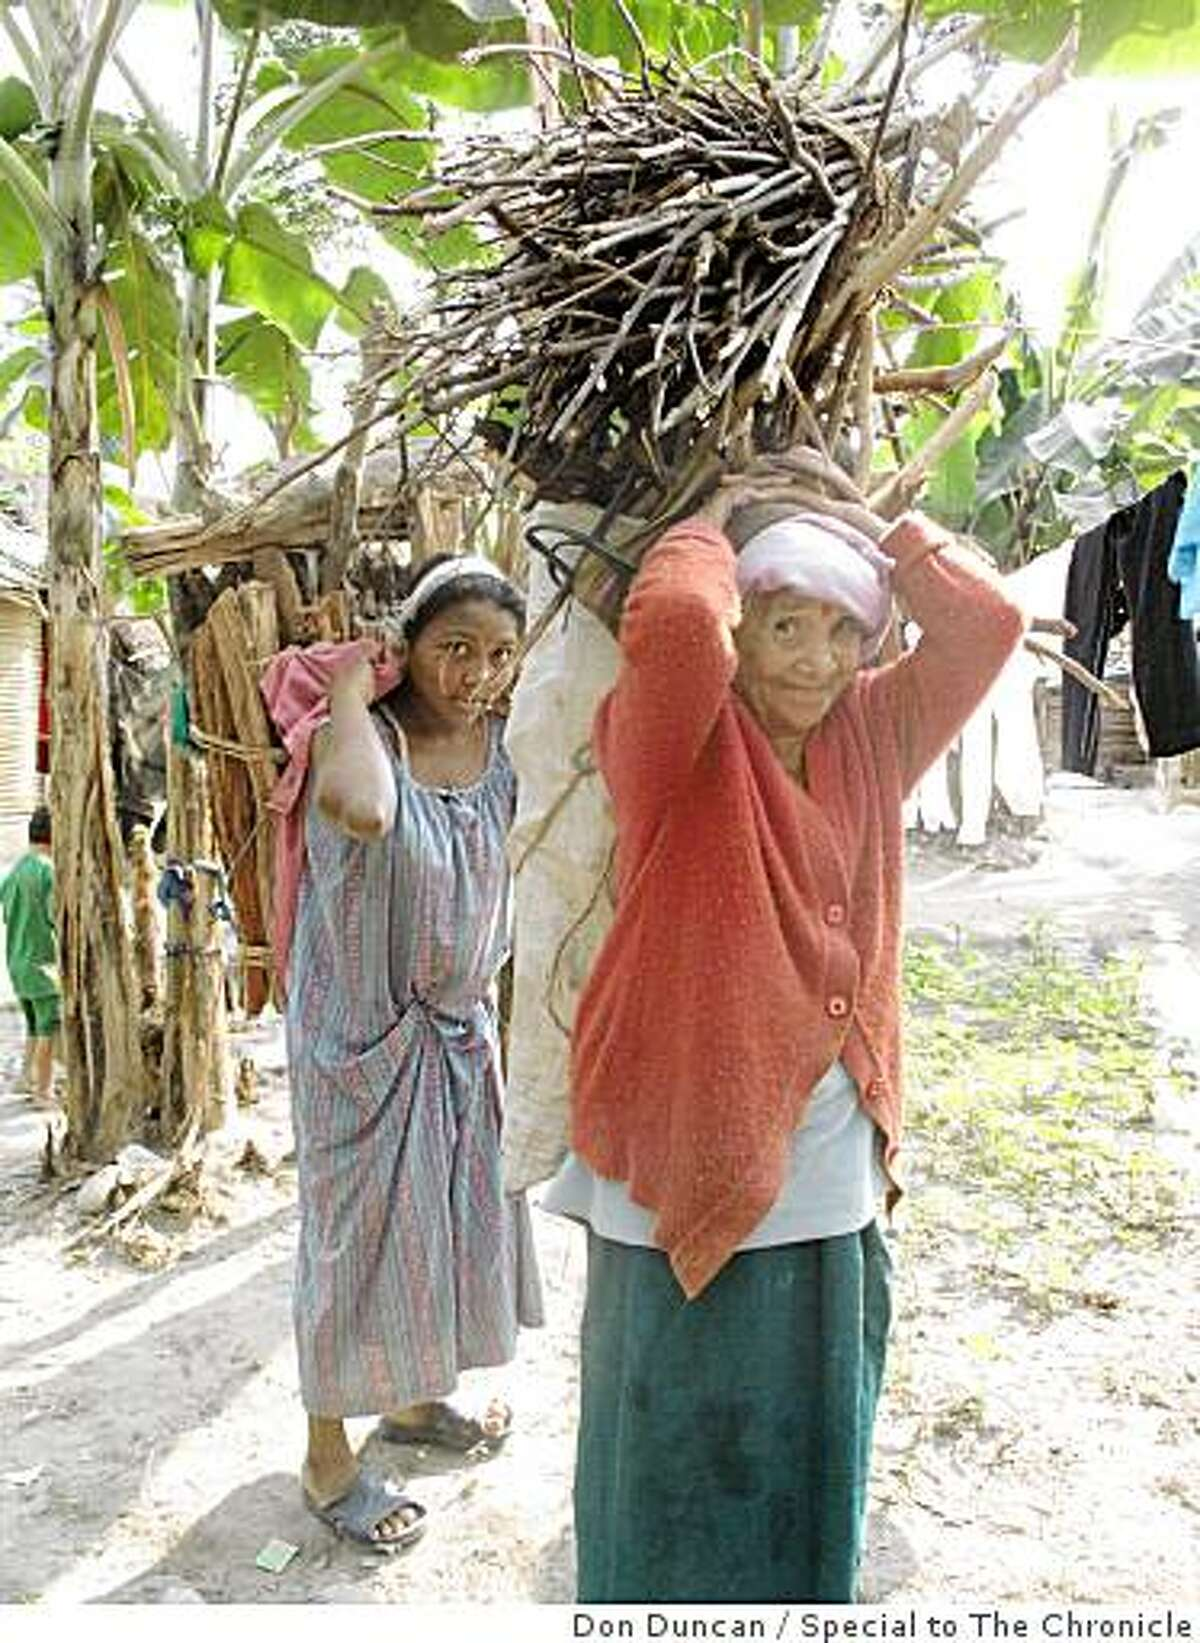 Nepalese refugees from Bhutan carry wood in the Beldangi I refugee camp in eastern Nepal.